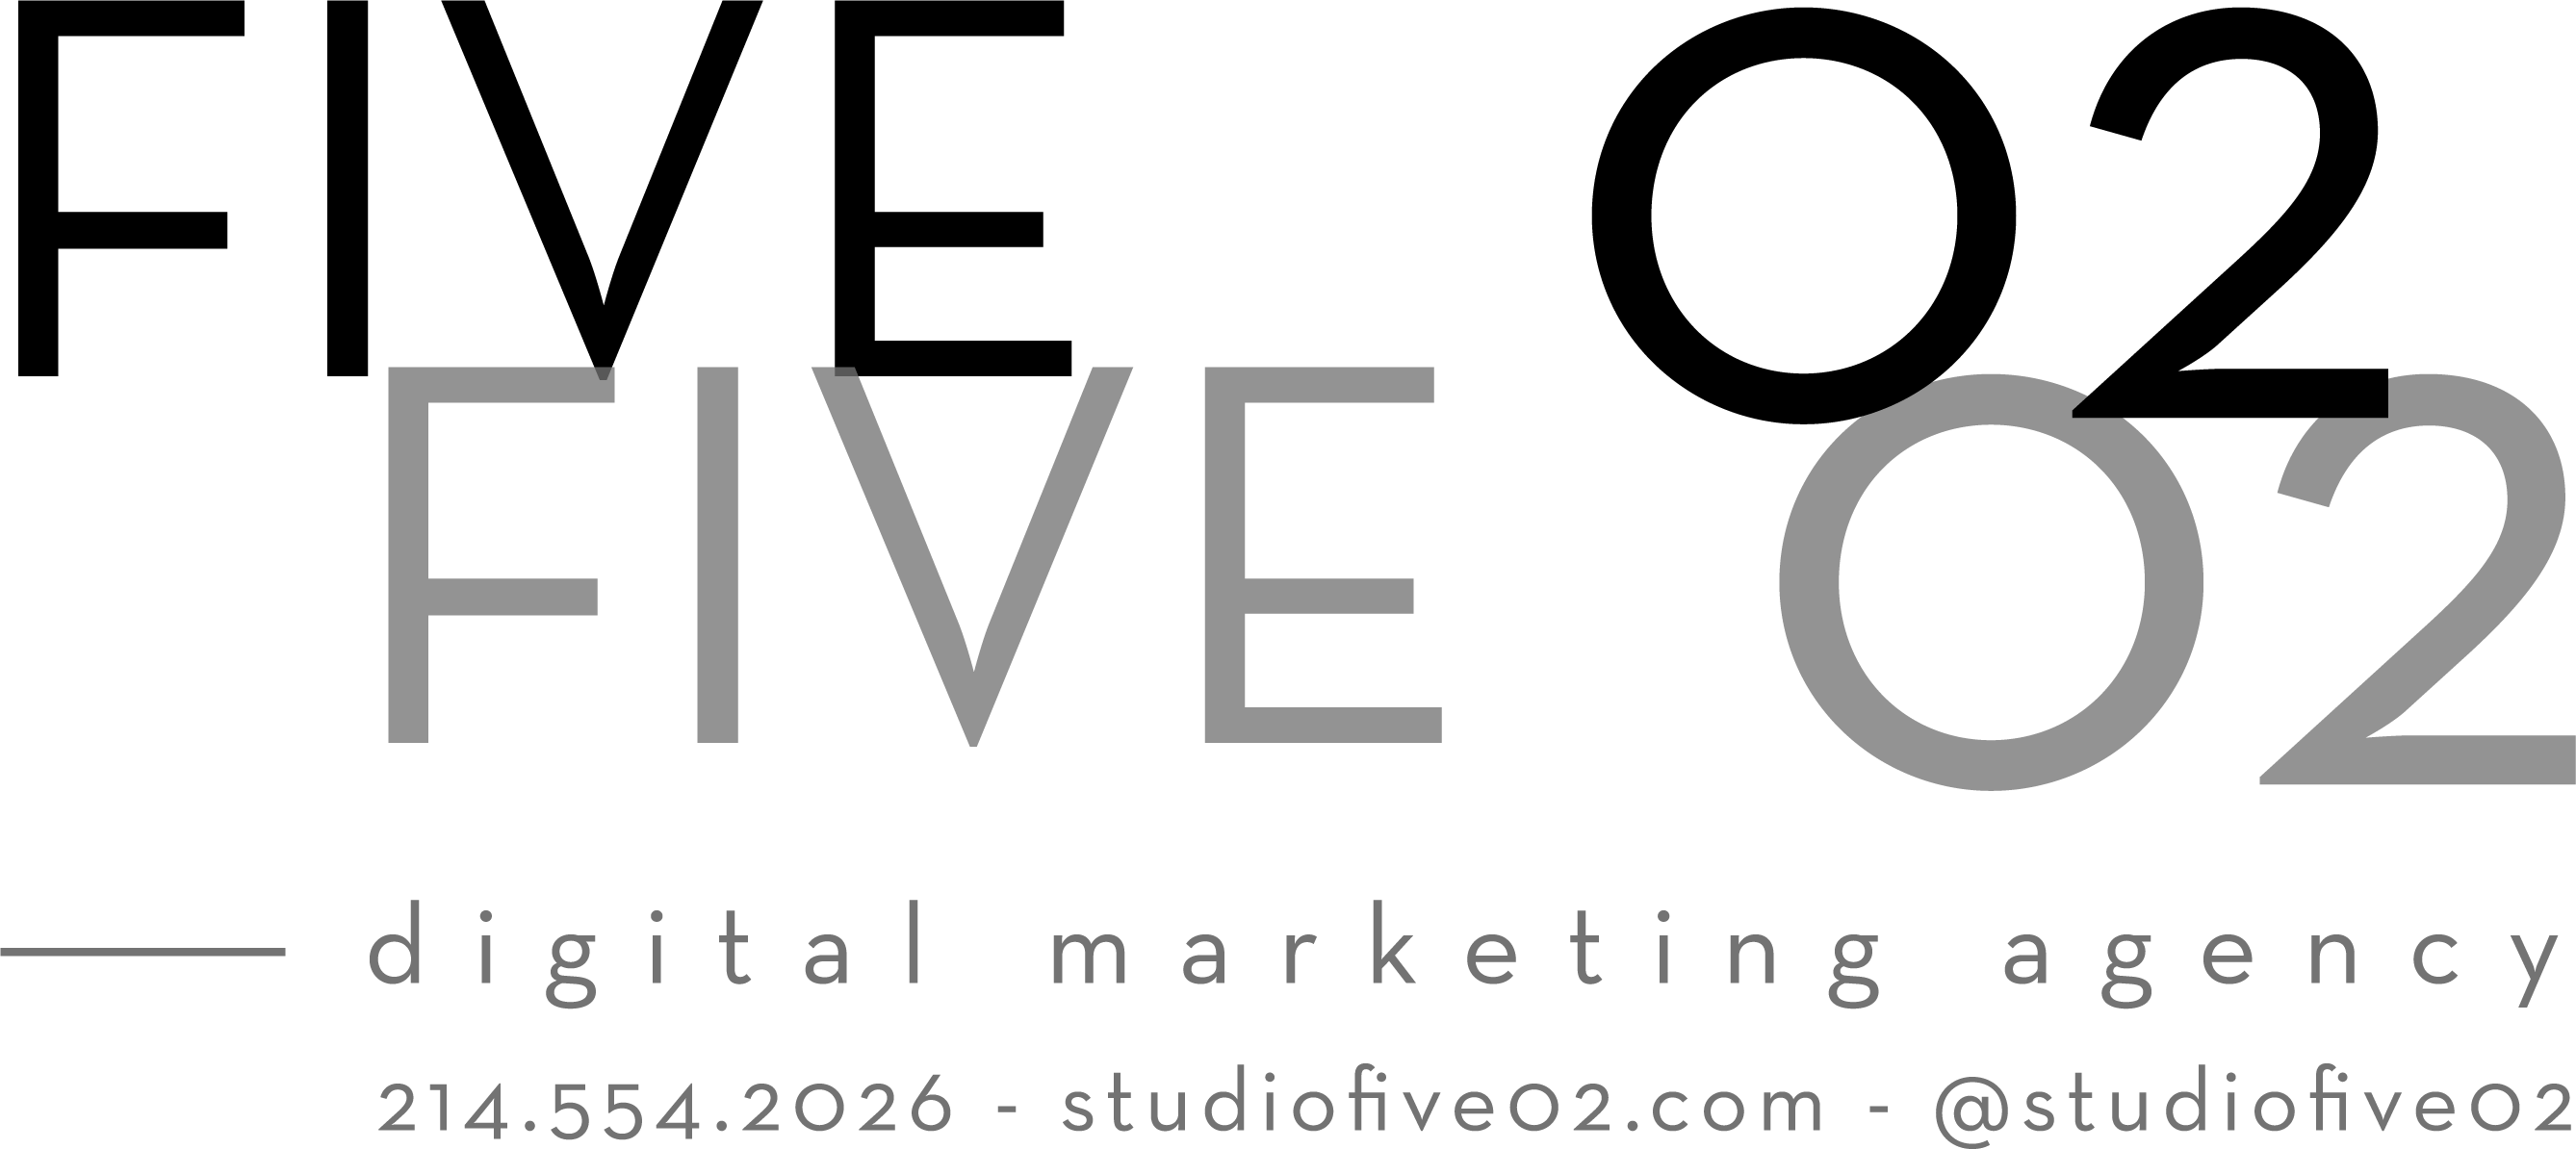 $200 Friends of Lockwood - Non Player Sponsor - Studio Five 02 Digital Marketing Agency  - Logo